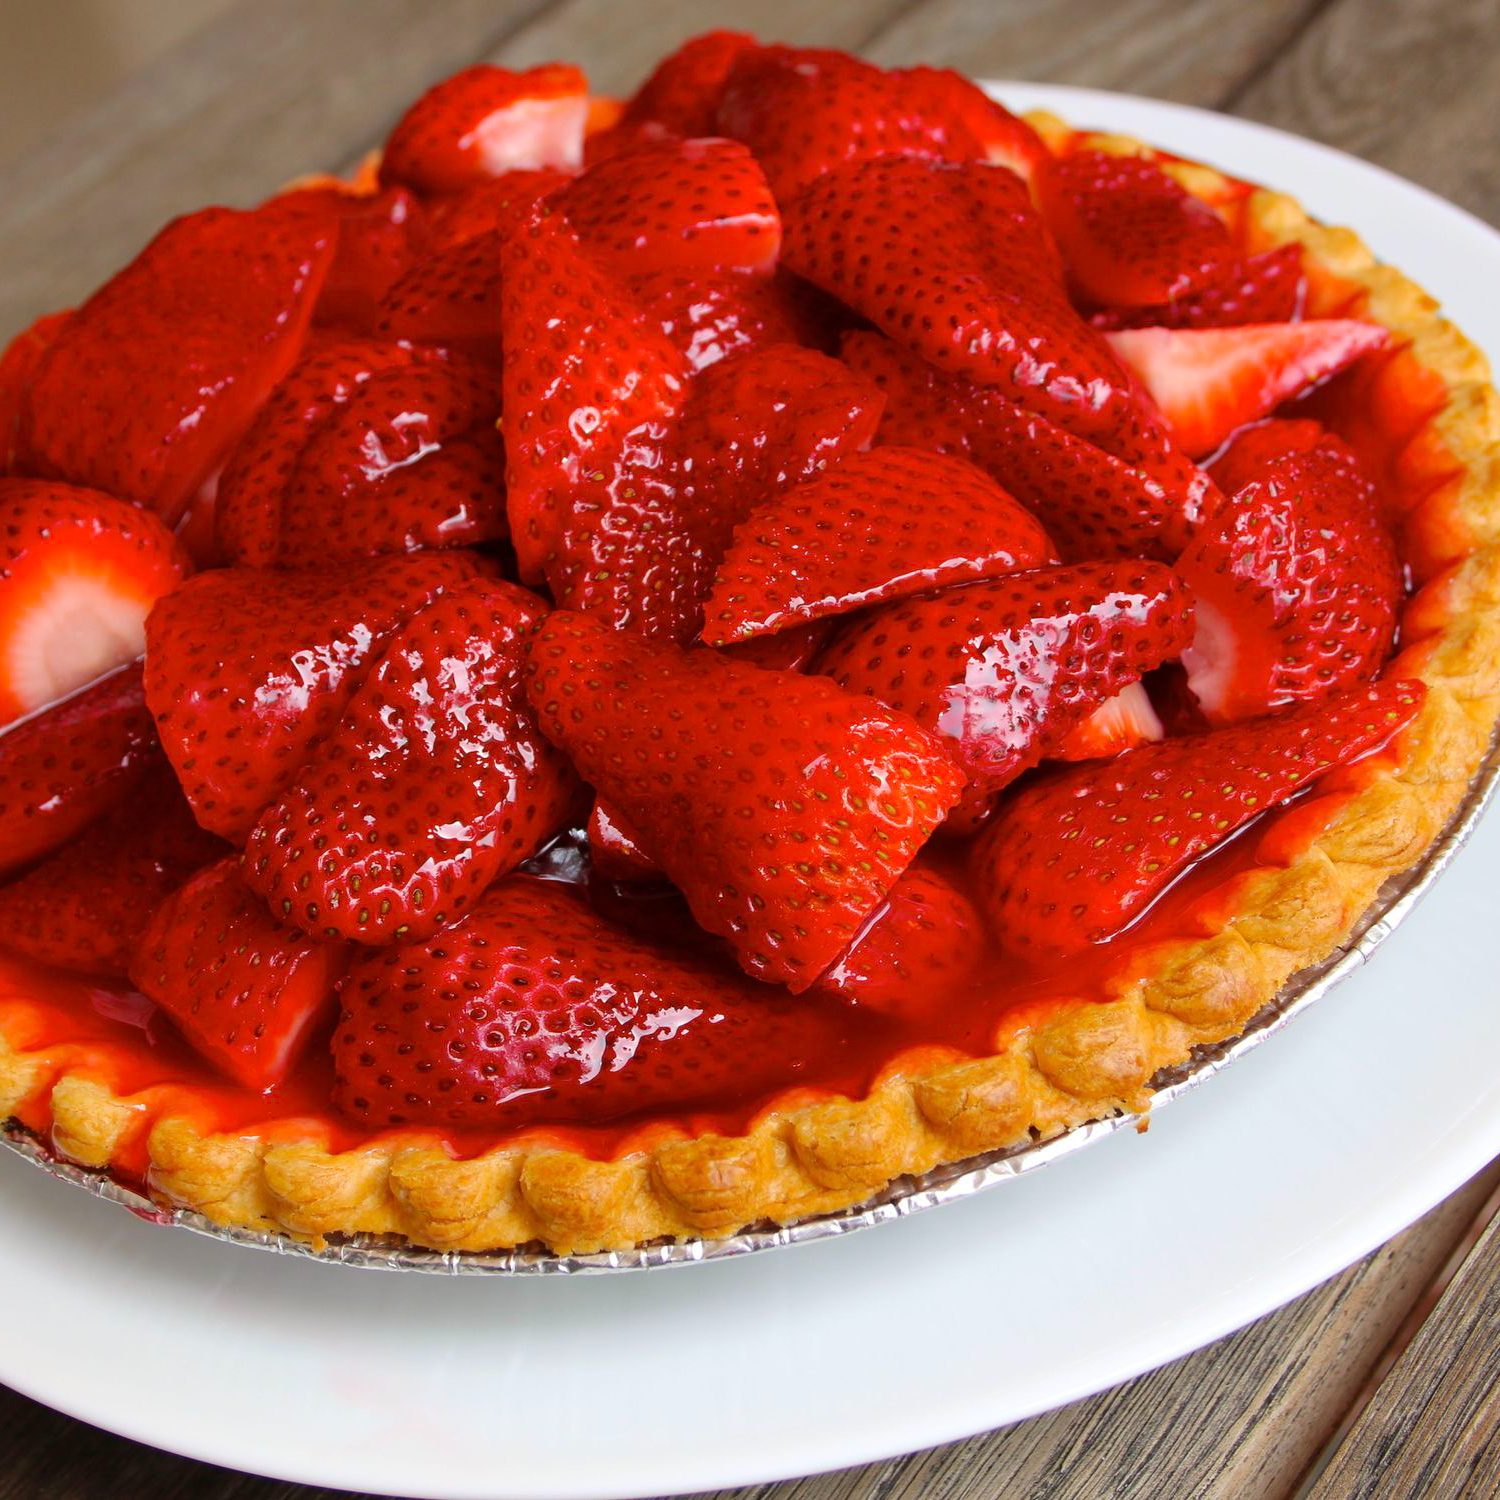 ONE DARK WISH and a Recipe for Strawberry Pie